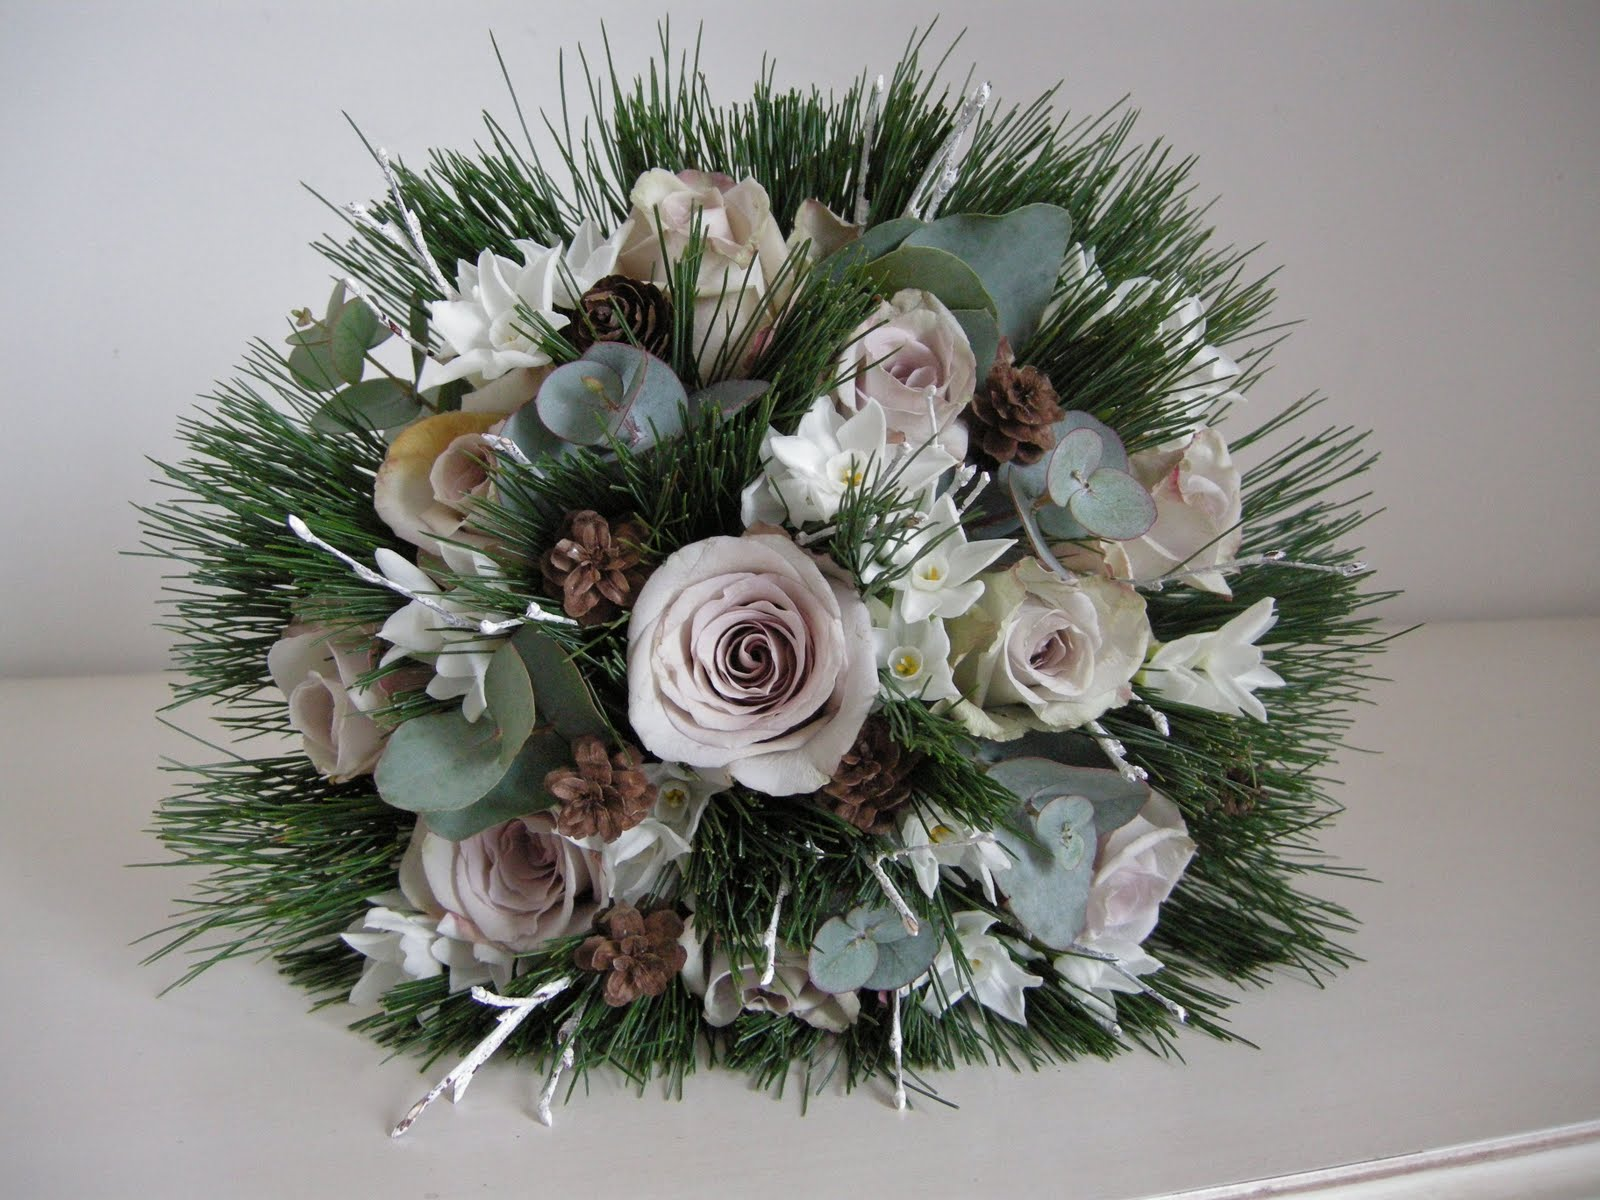 Winter Wedding Bouquet Of Lilac Roses Pine Mini Cones Paperwhites For Perfume Eucalyptus And Some Gently Glittered Twigs To Catch The Light